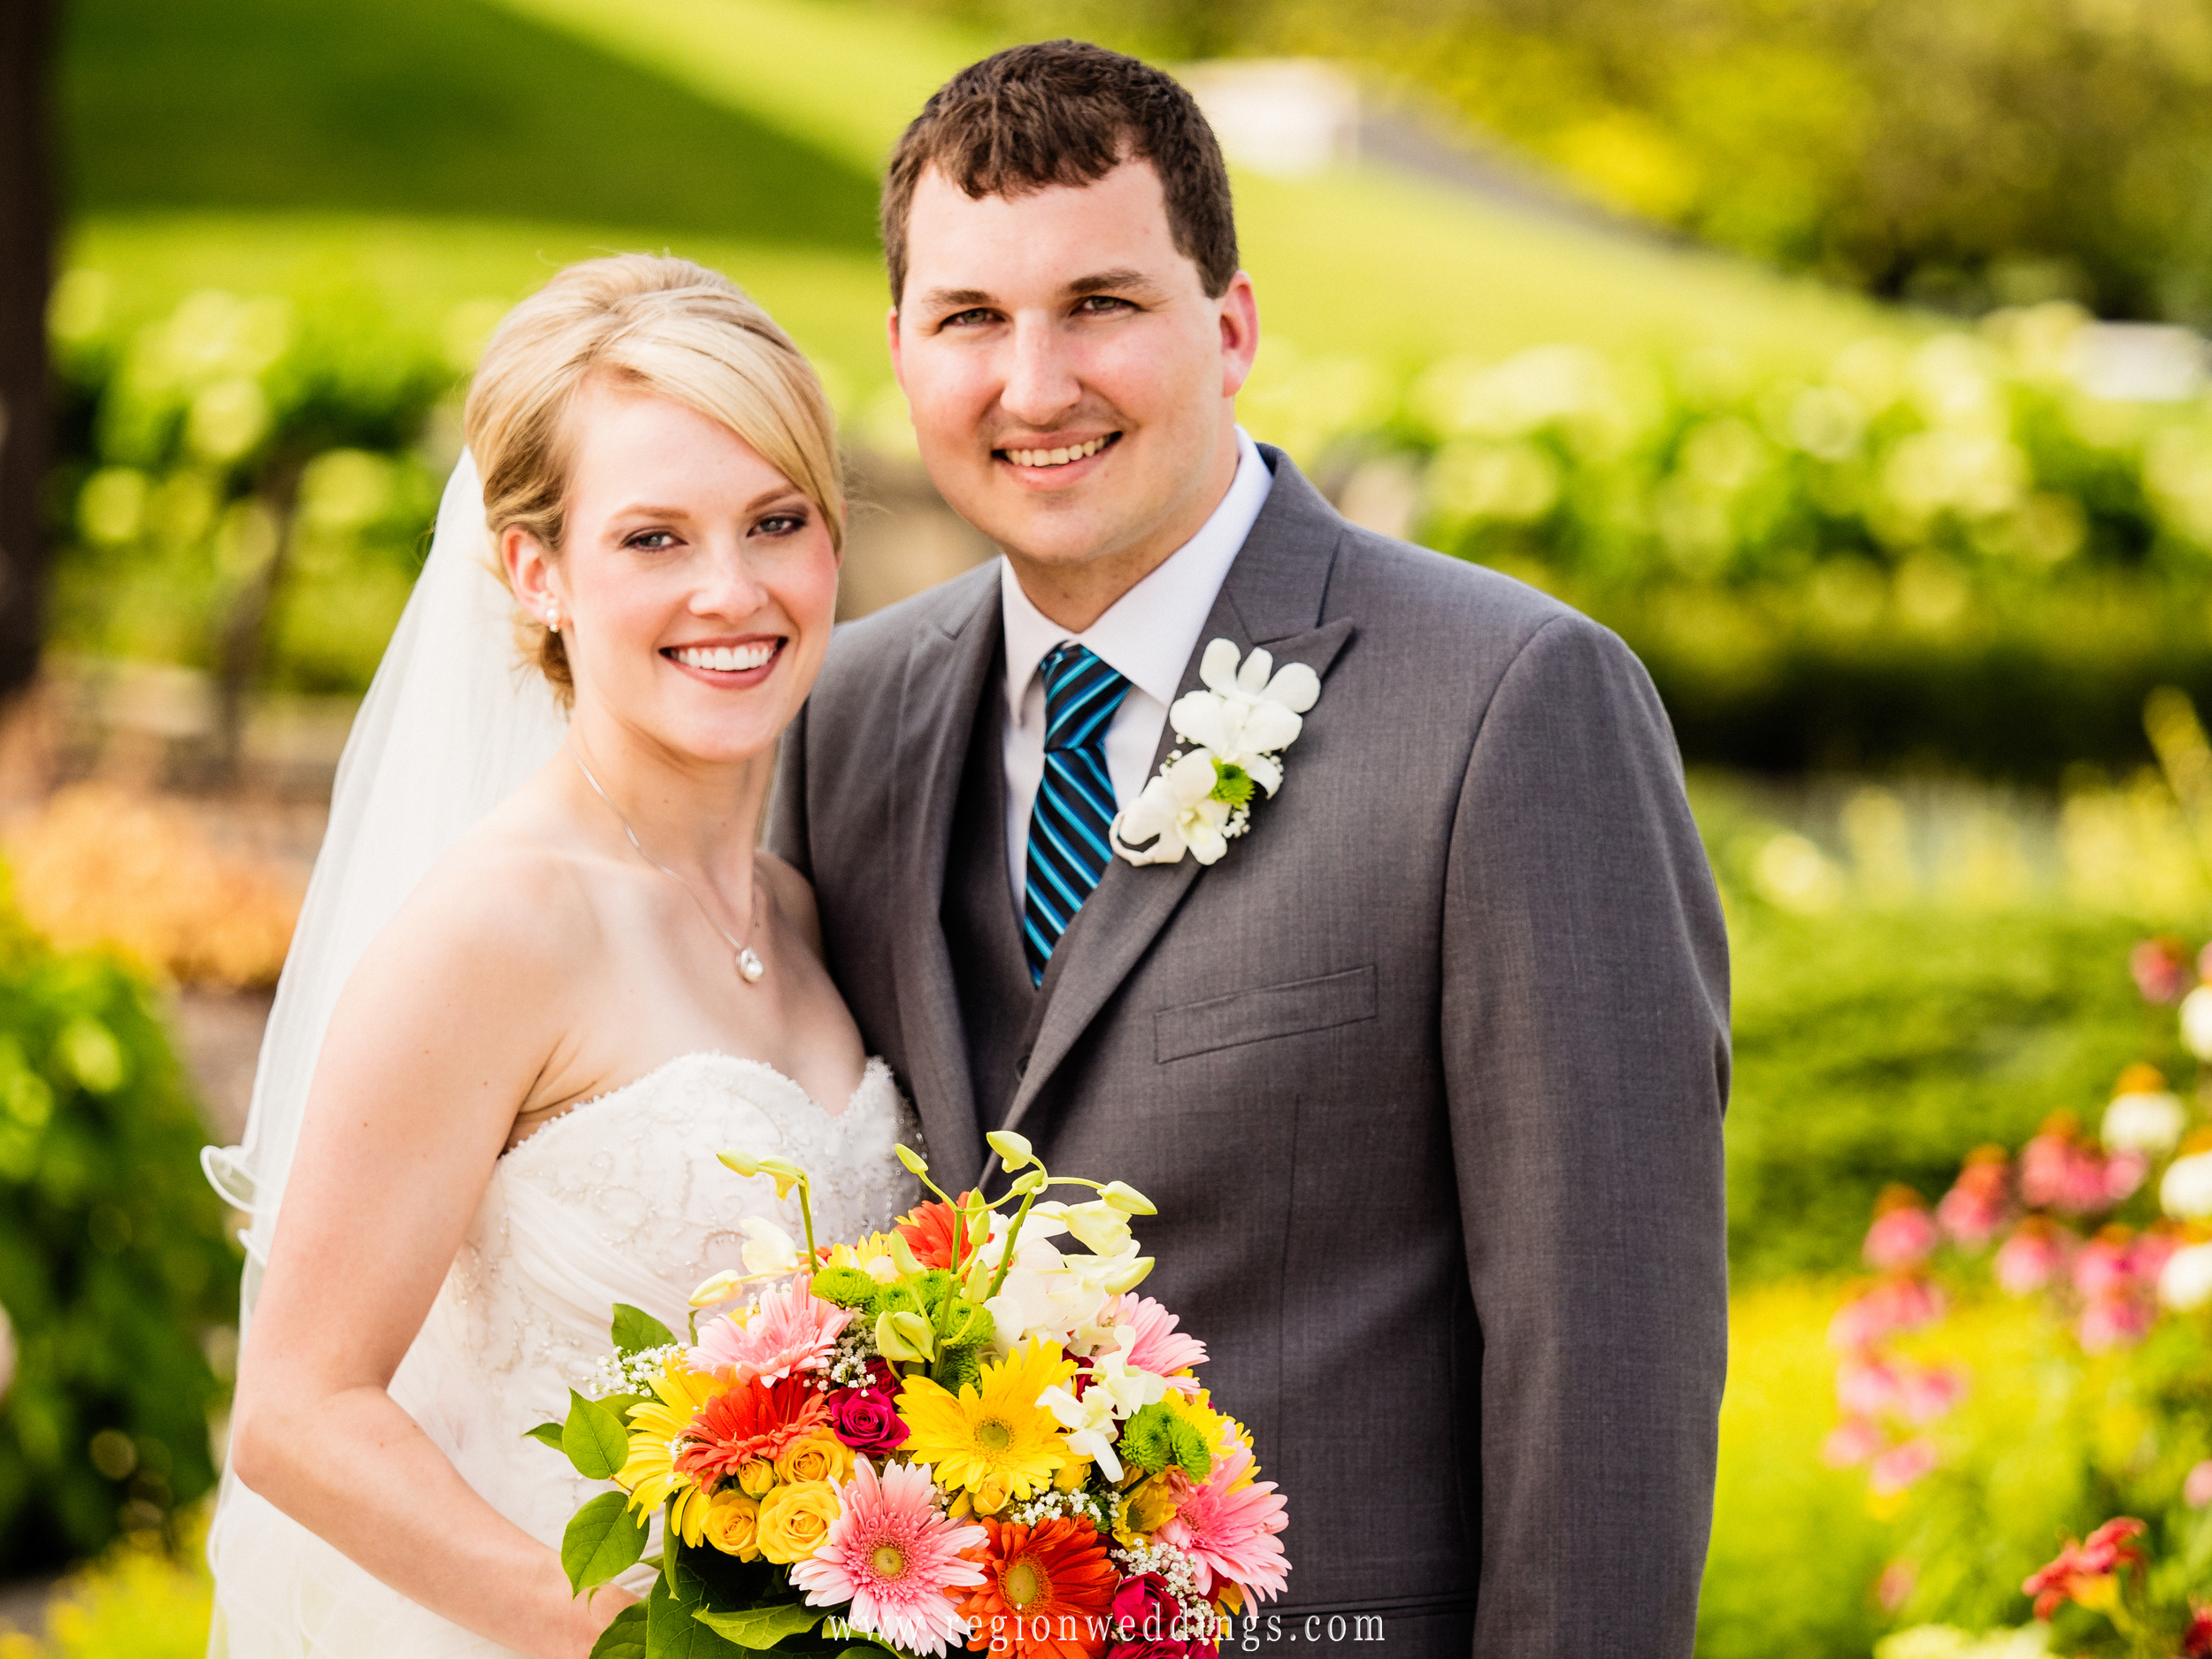 Bride and groom in the garden at Sand Creek Country Club.